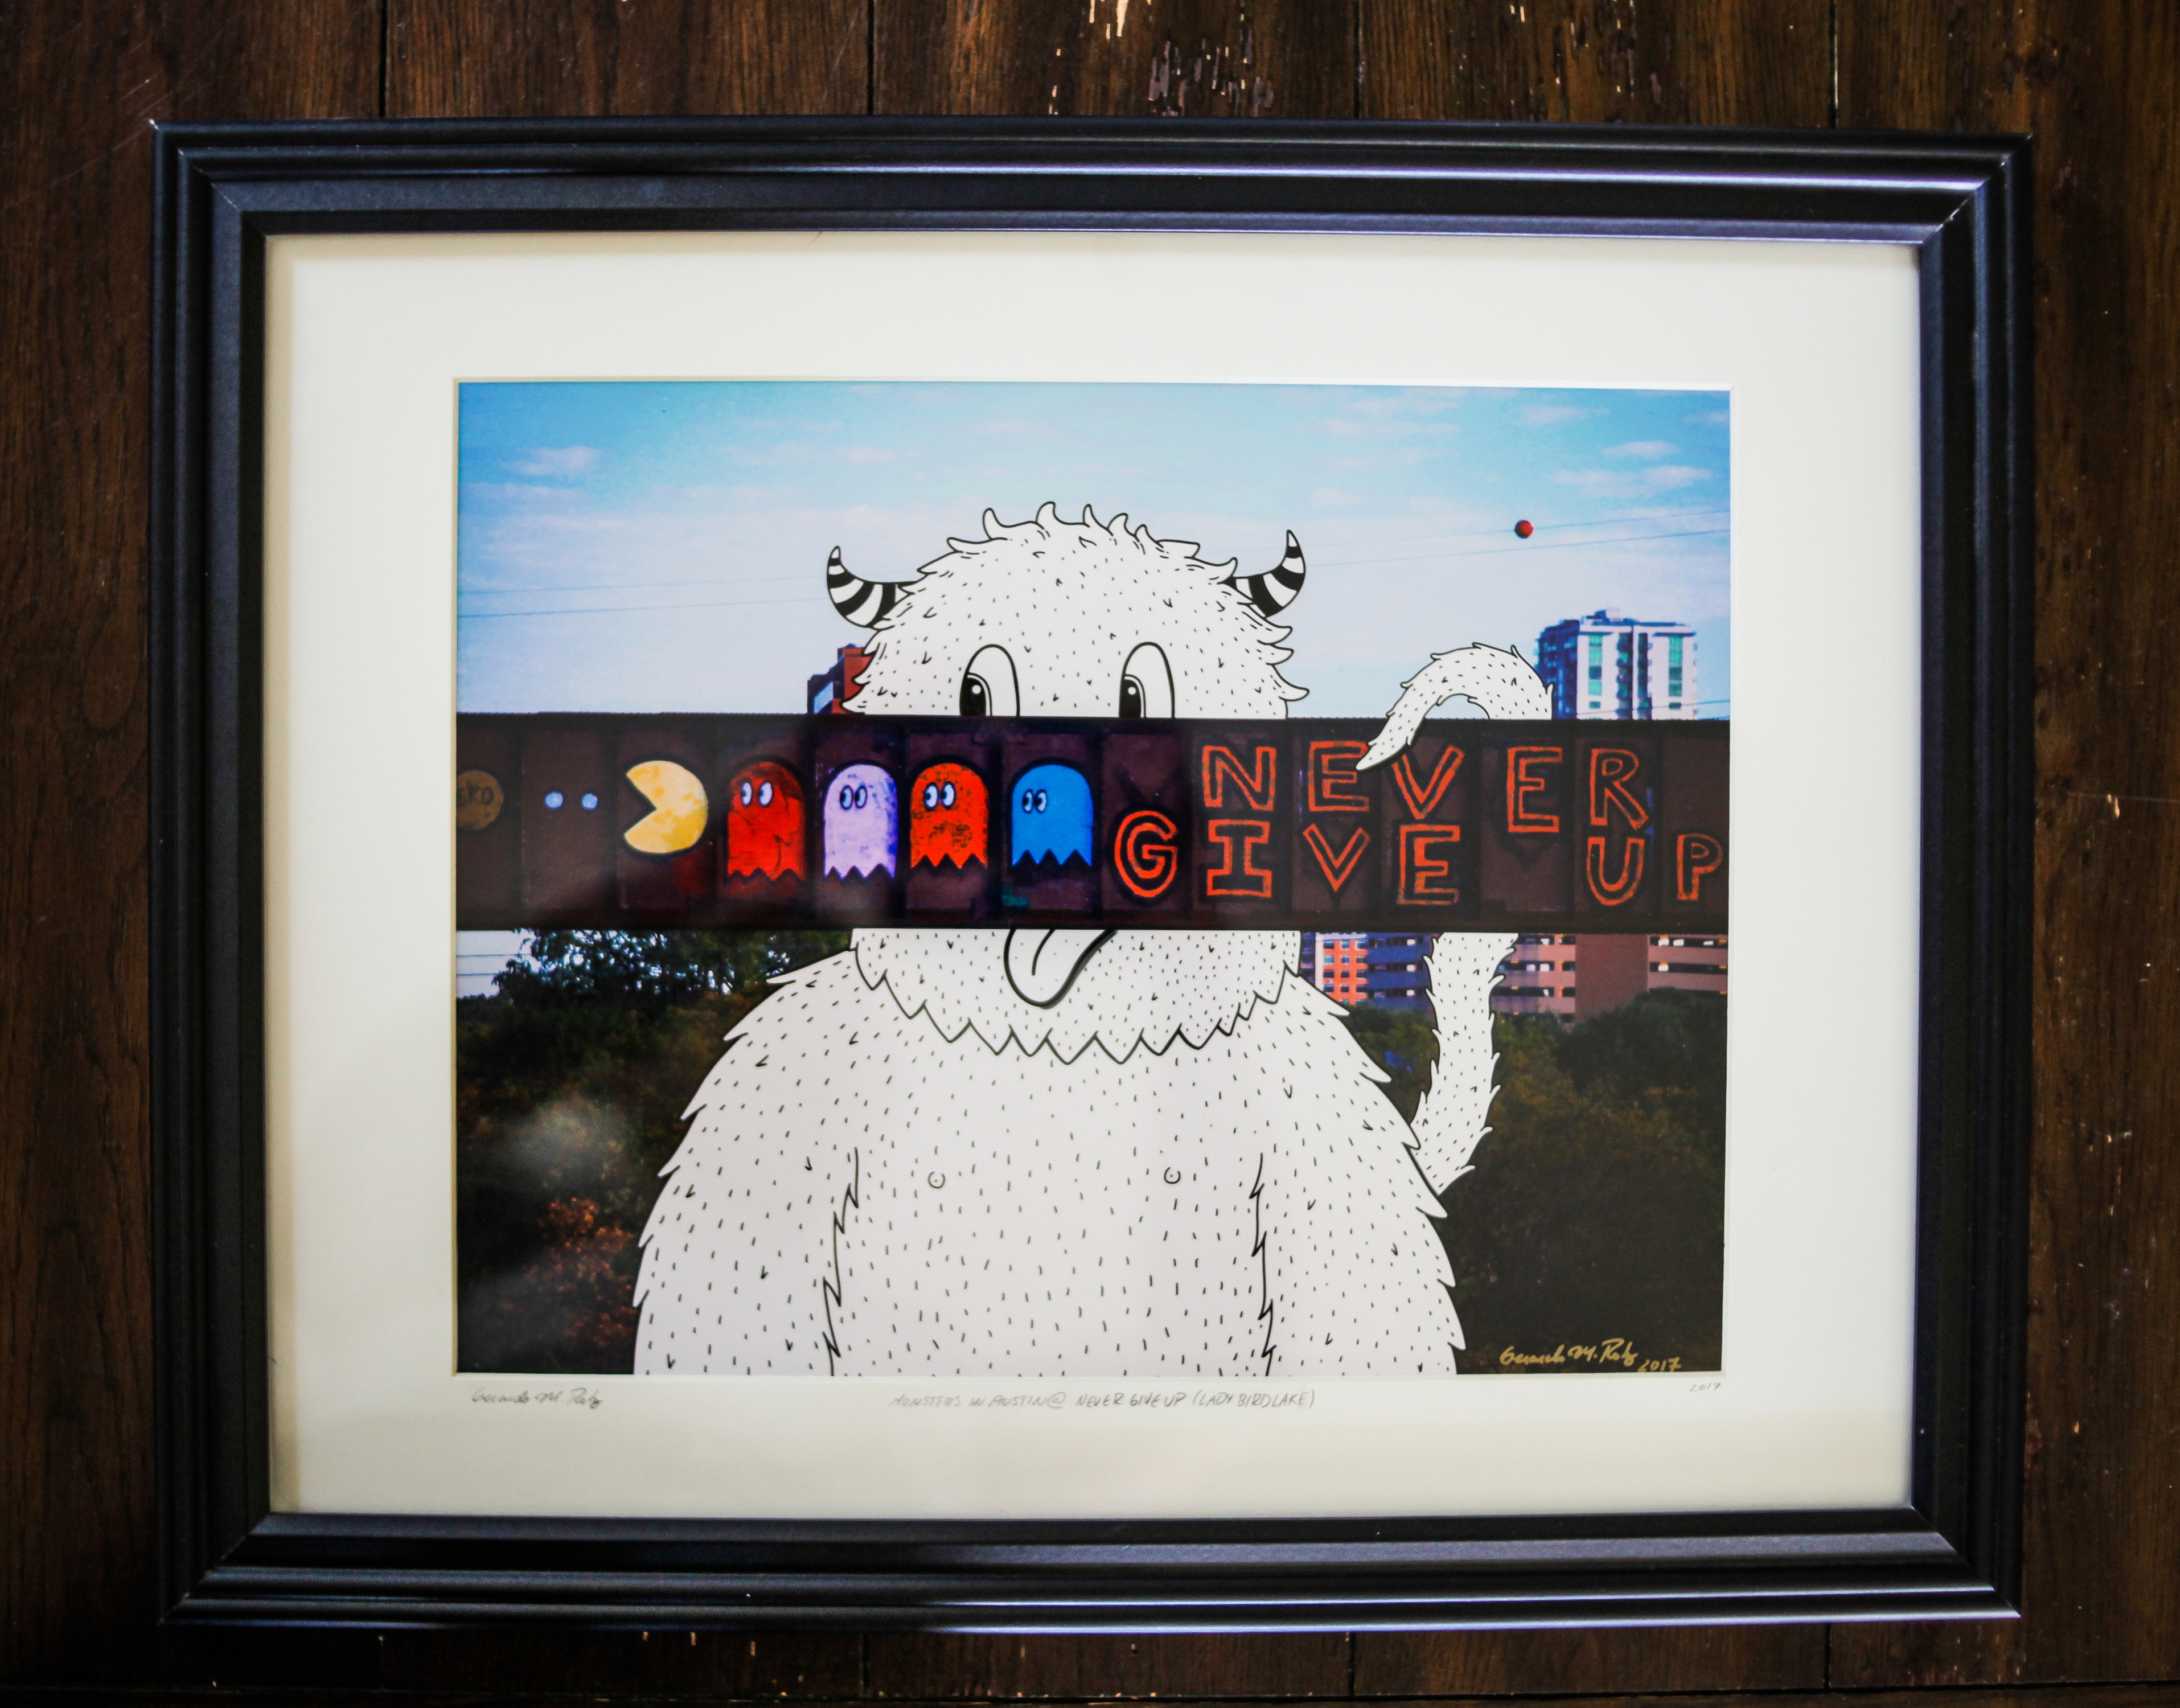 1. Gerardo_Rodriguez_Monsters In Austin at Never Give Up_Austin Art.jpg